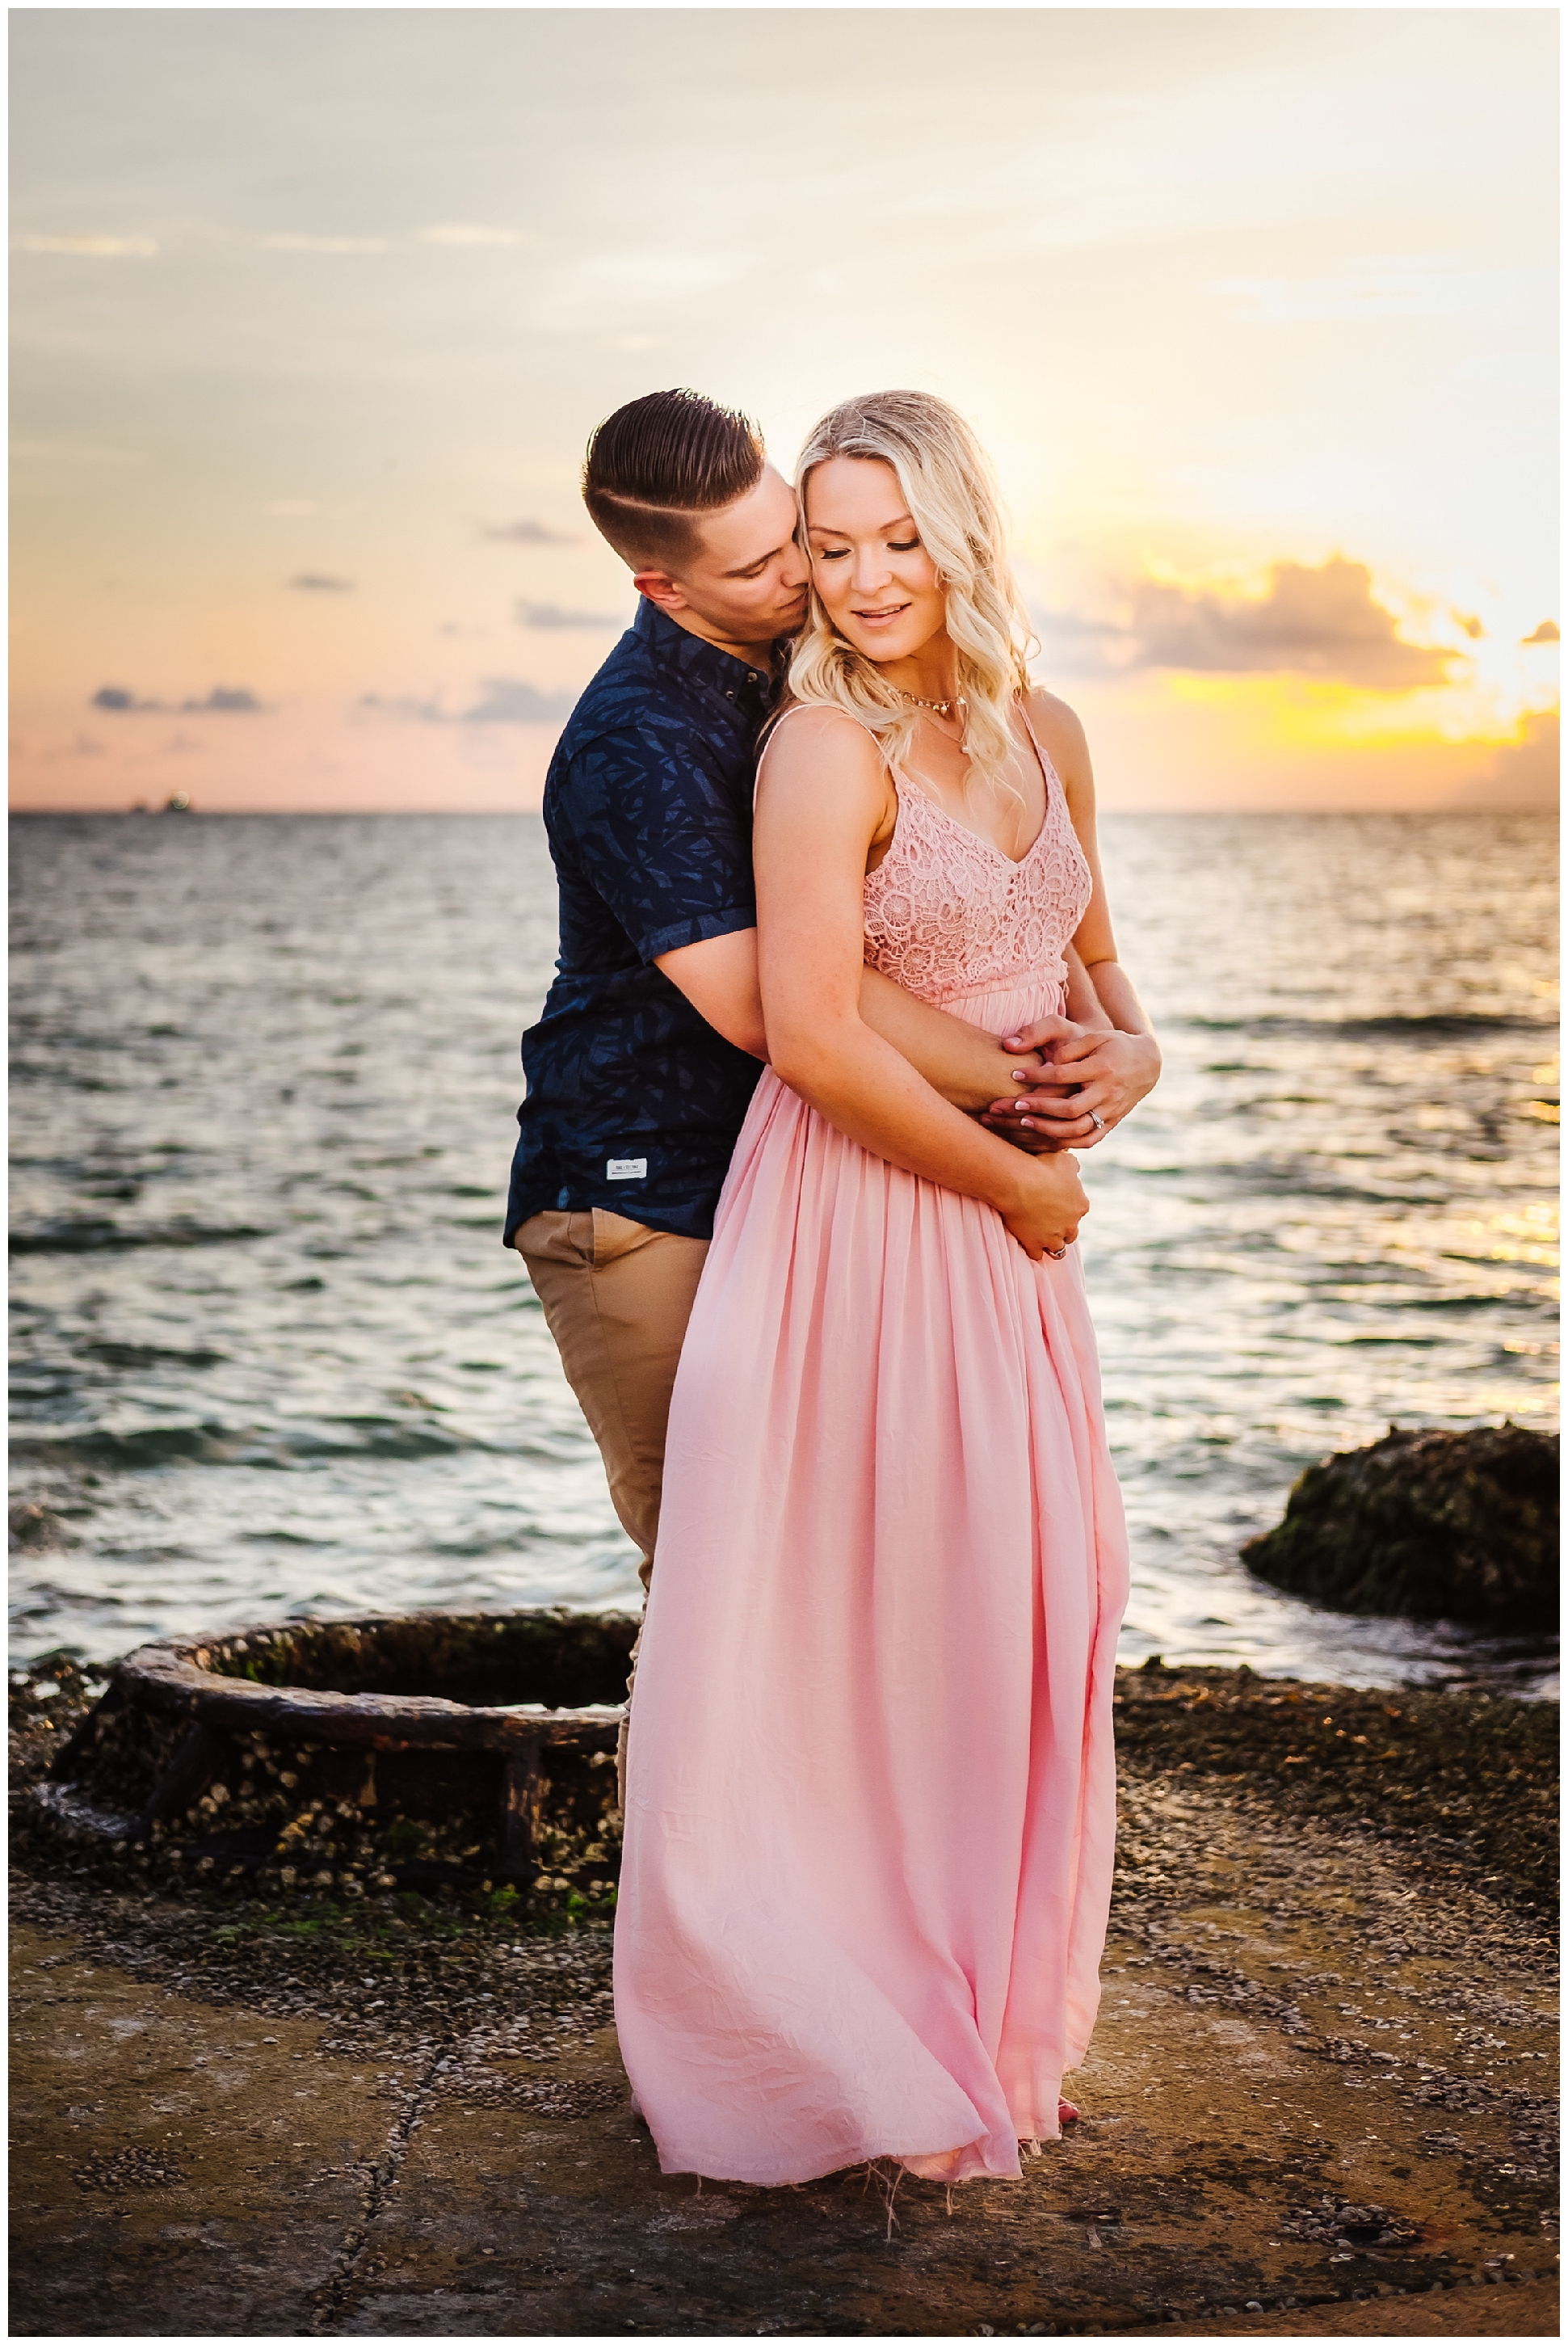 fort-desoto-engagement-photos-florida-beach-sunset_0235.jpg